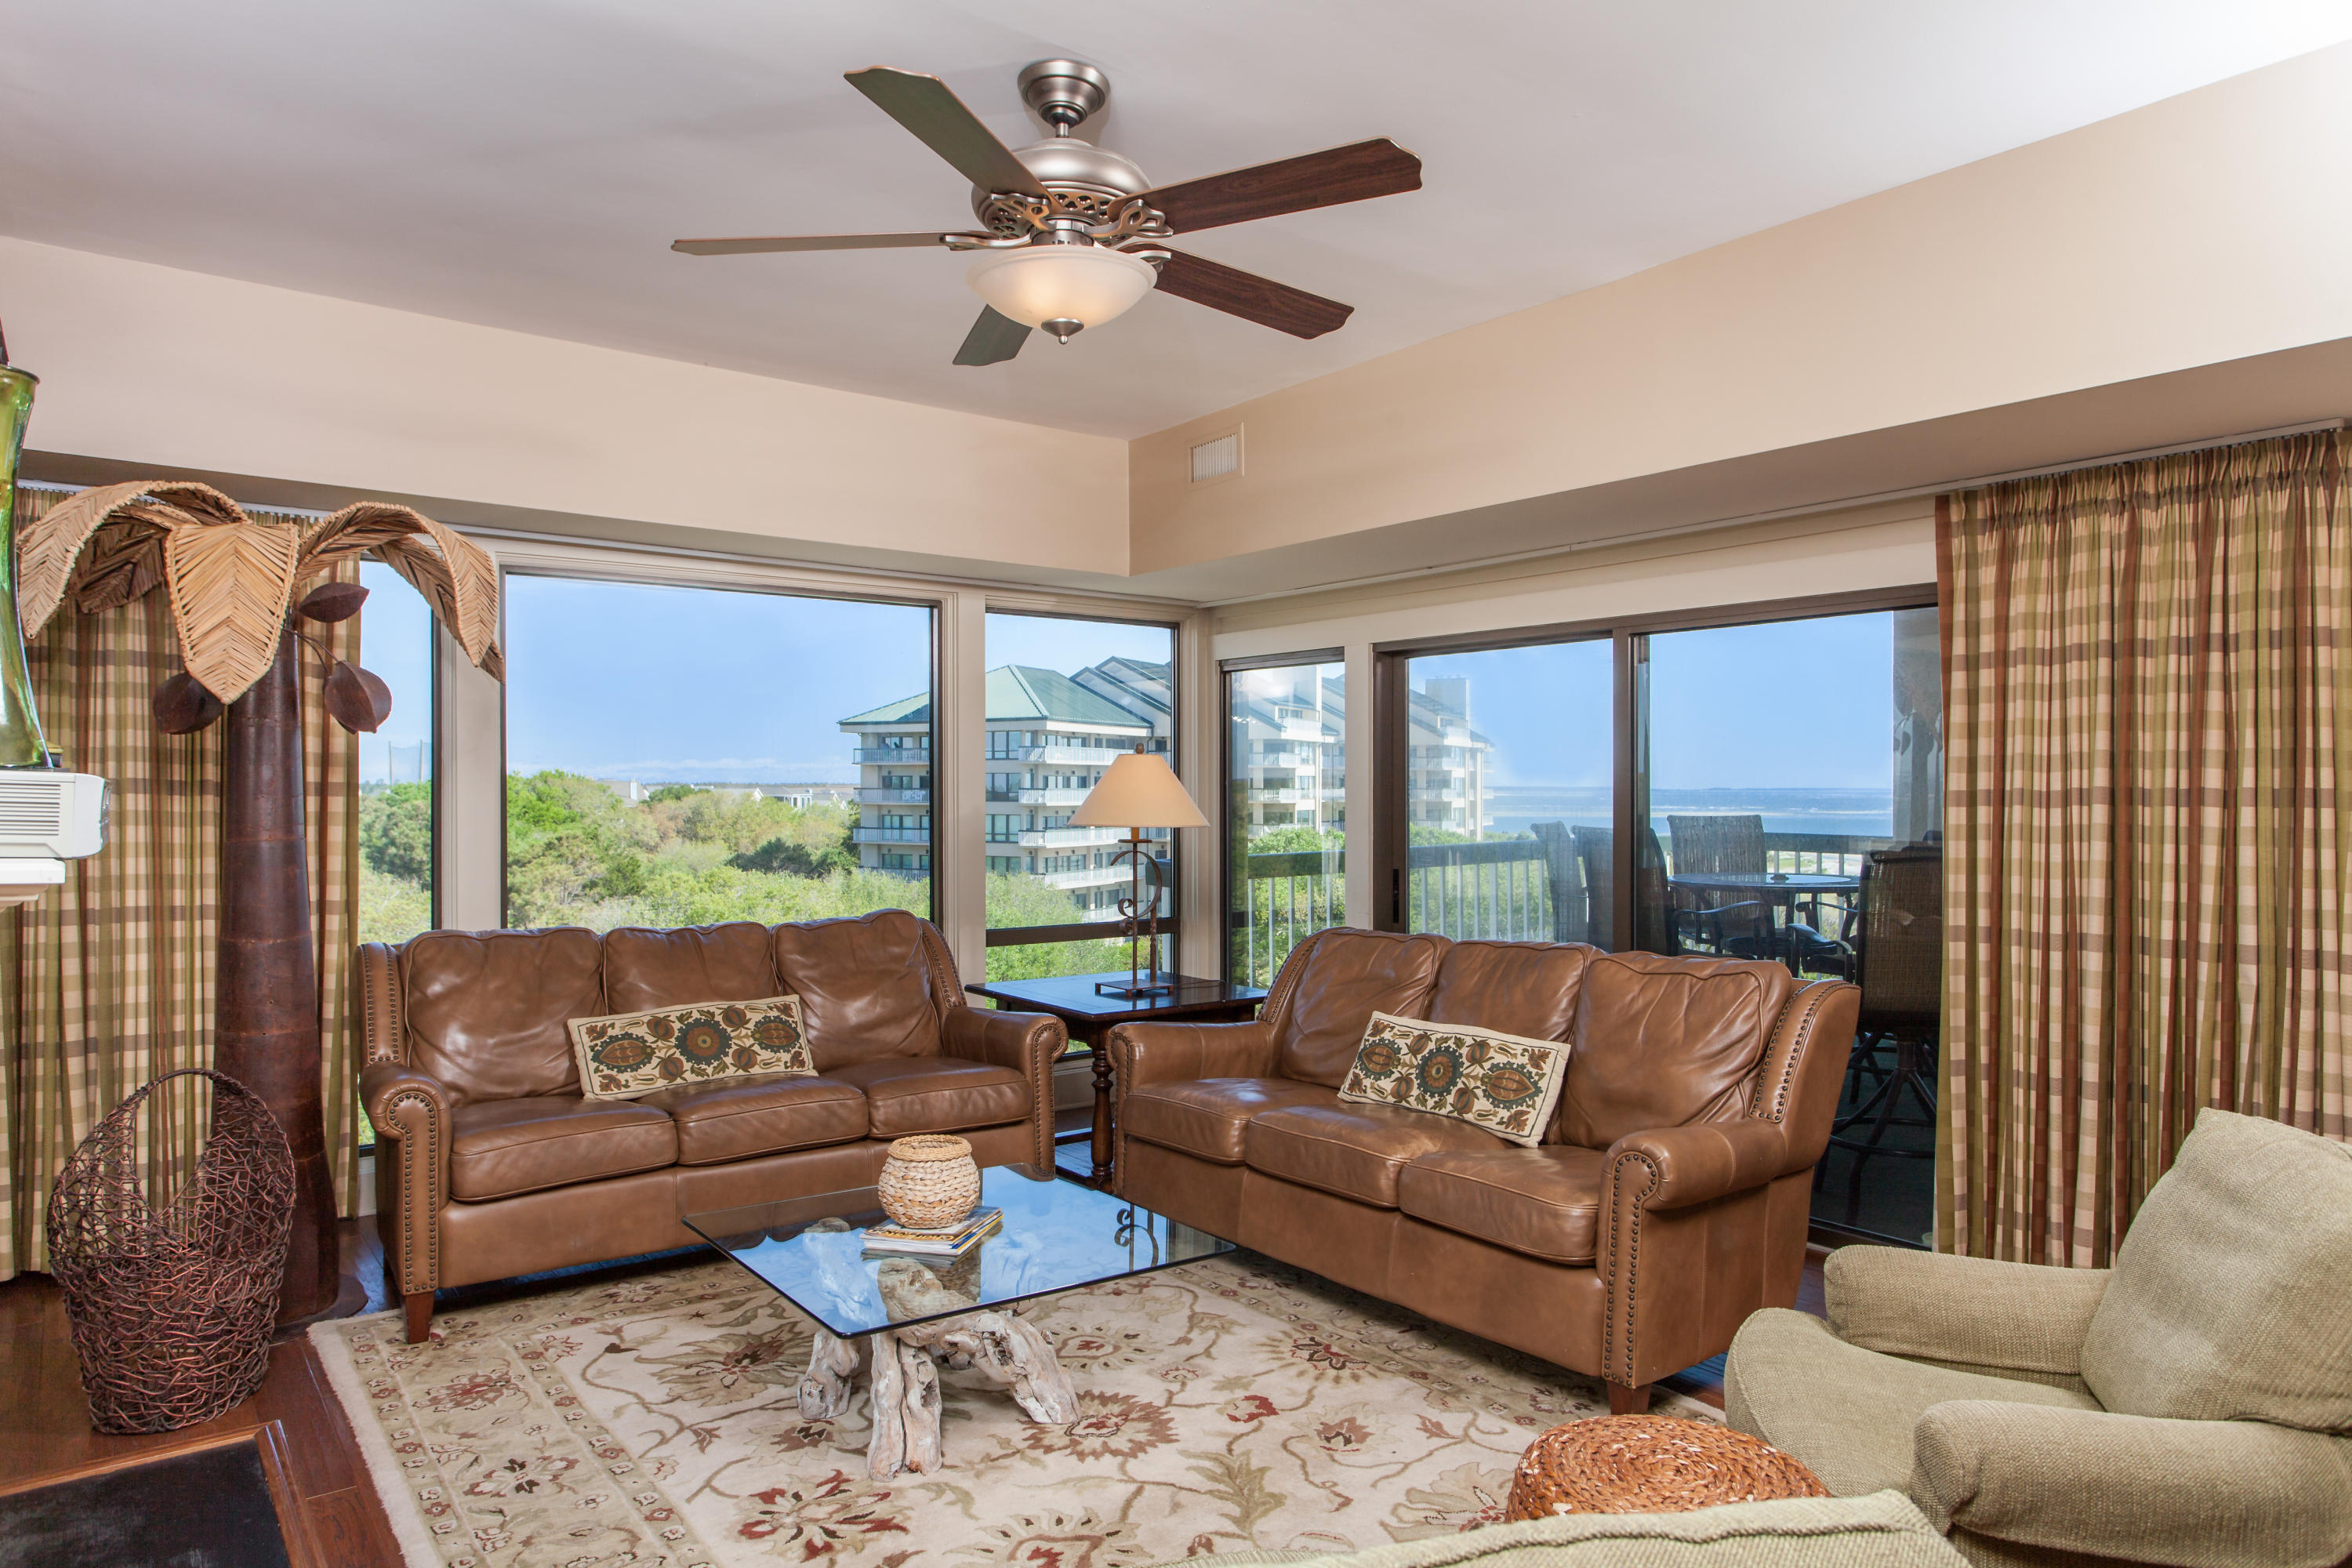 Wild Dunes Homes For Sale - 1410 Ocean Club, Isle of Palms, SC - 15